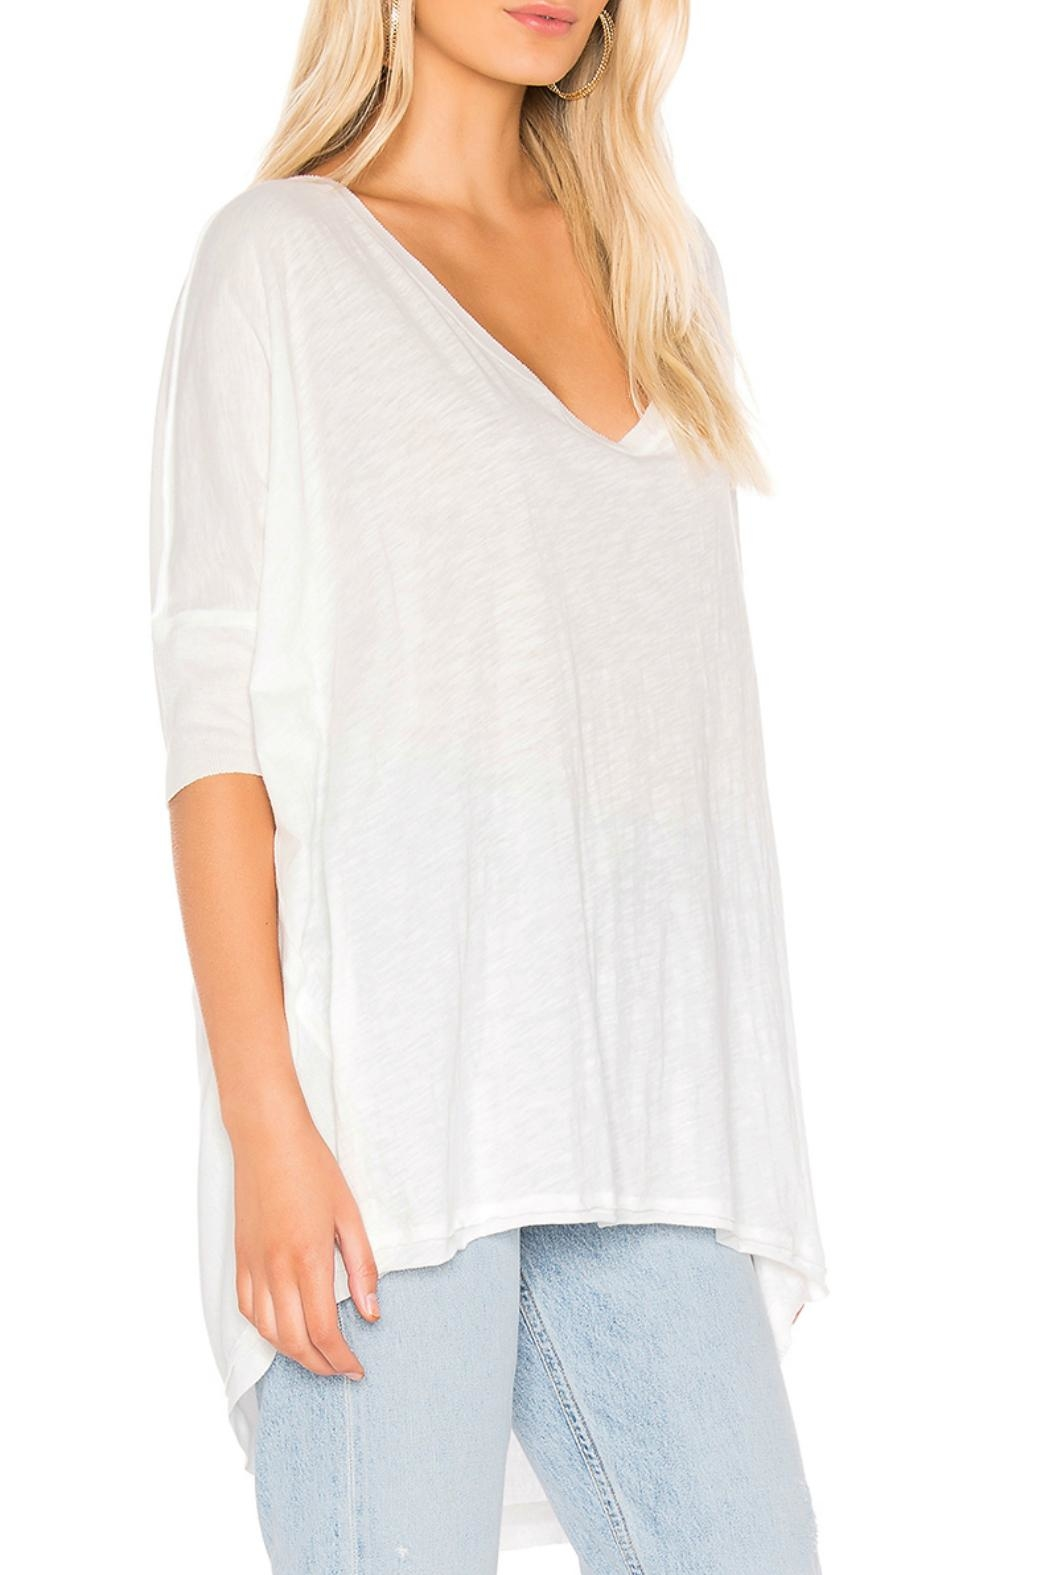 Free People Catch Waves Tee - Front Full Image